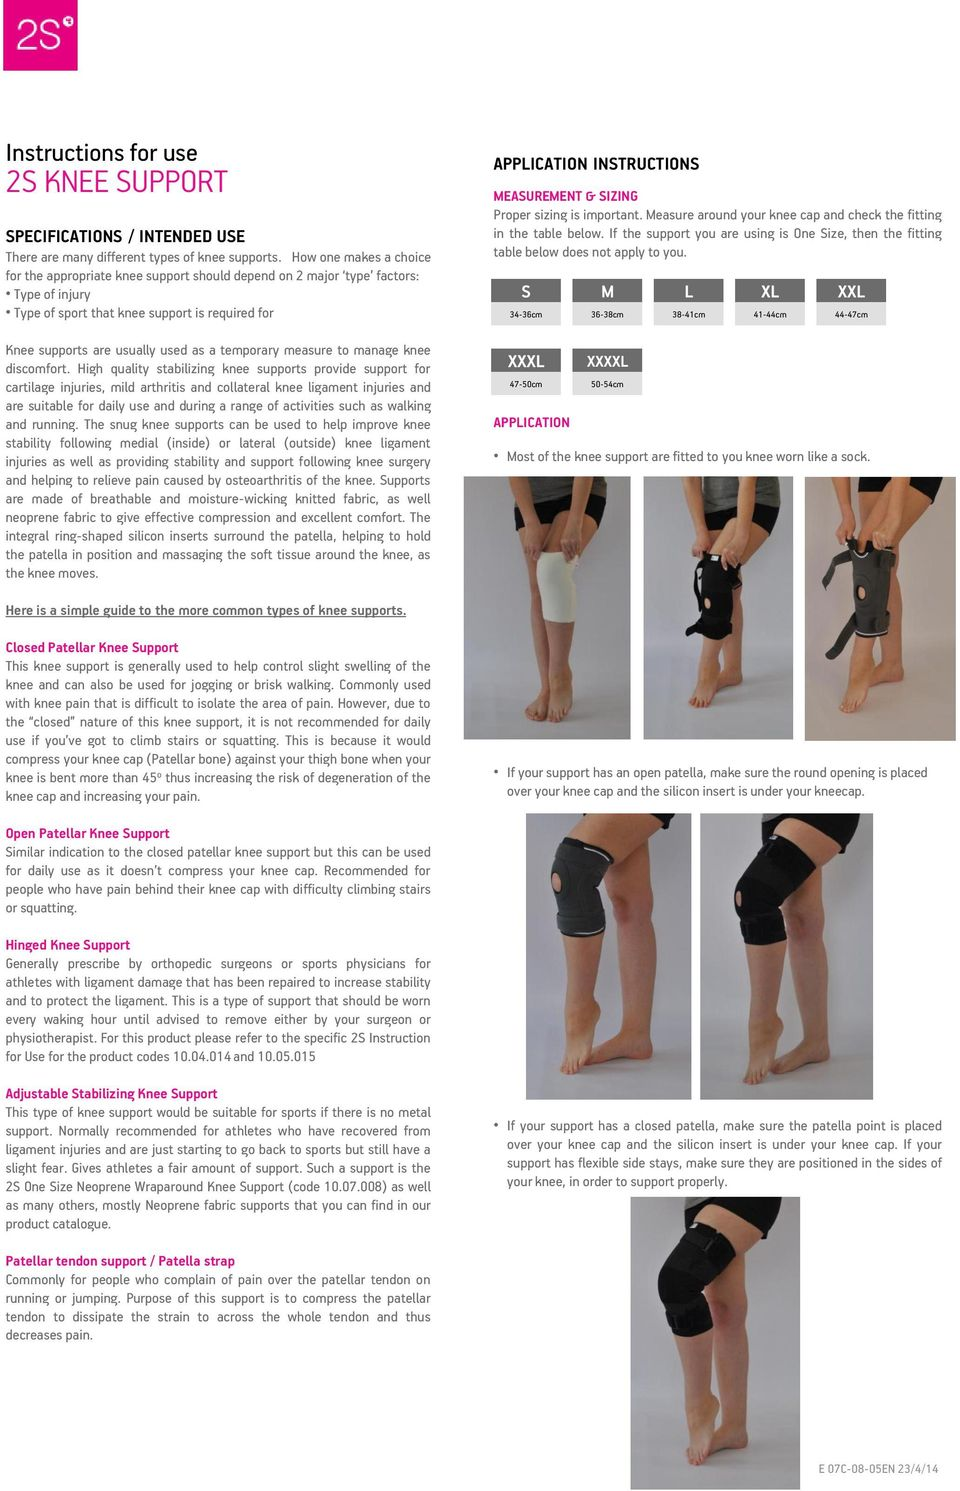 temporary measure to manage knee discomfort.